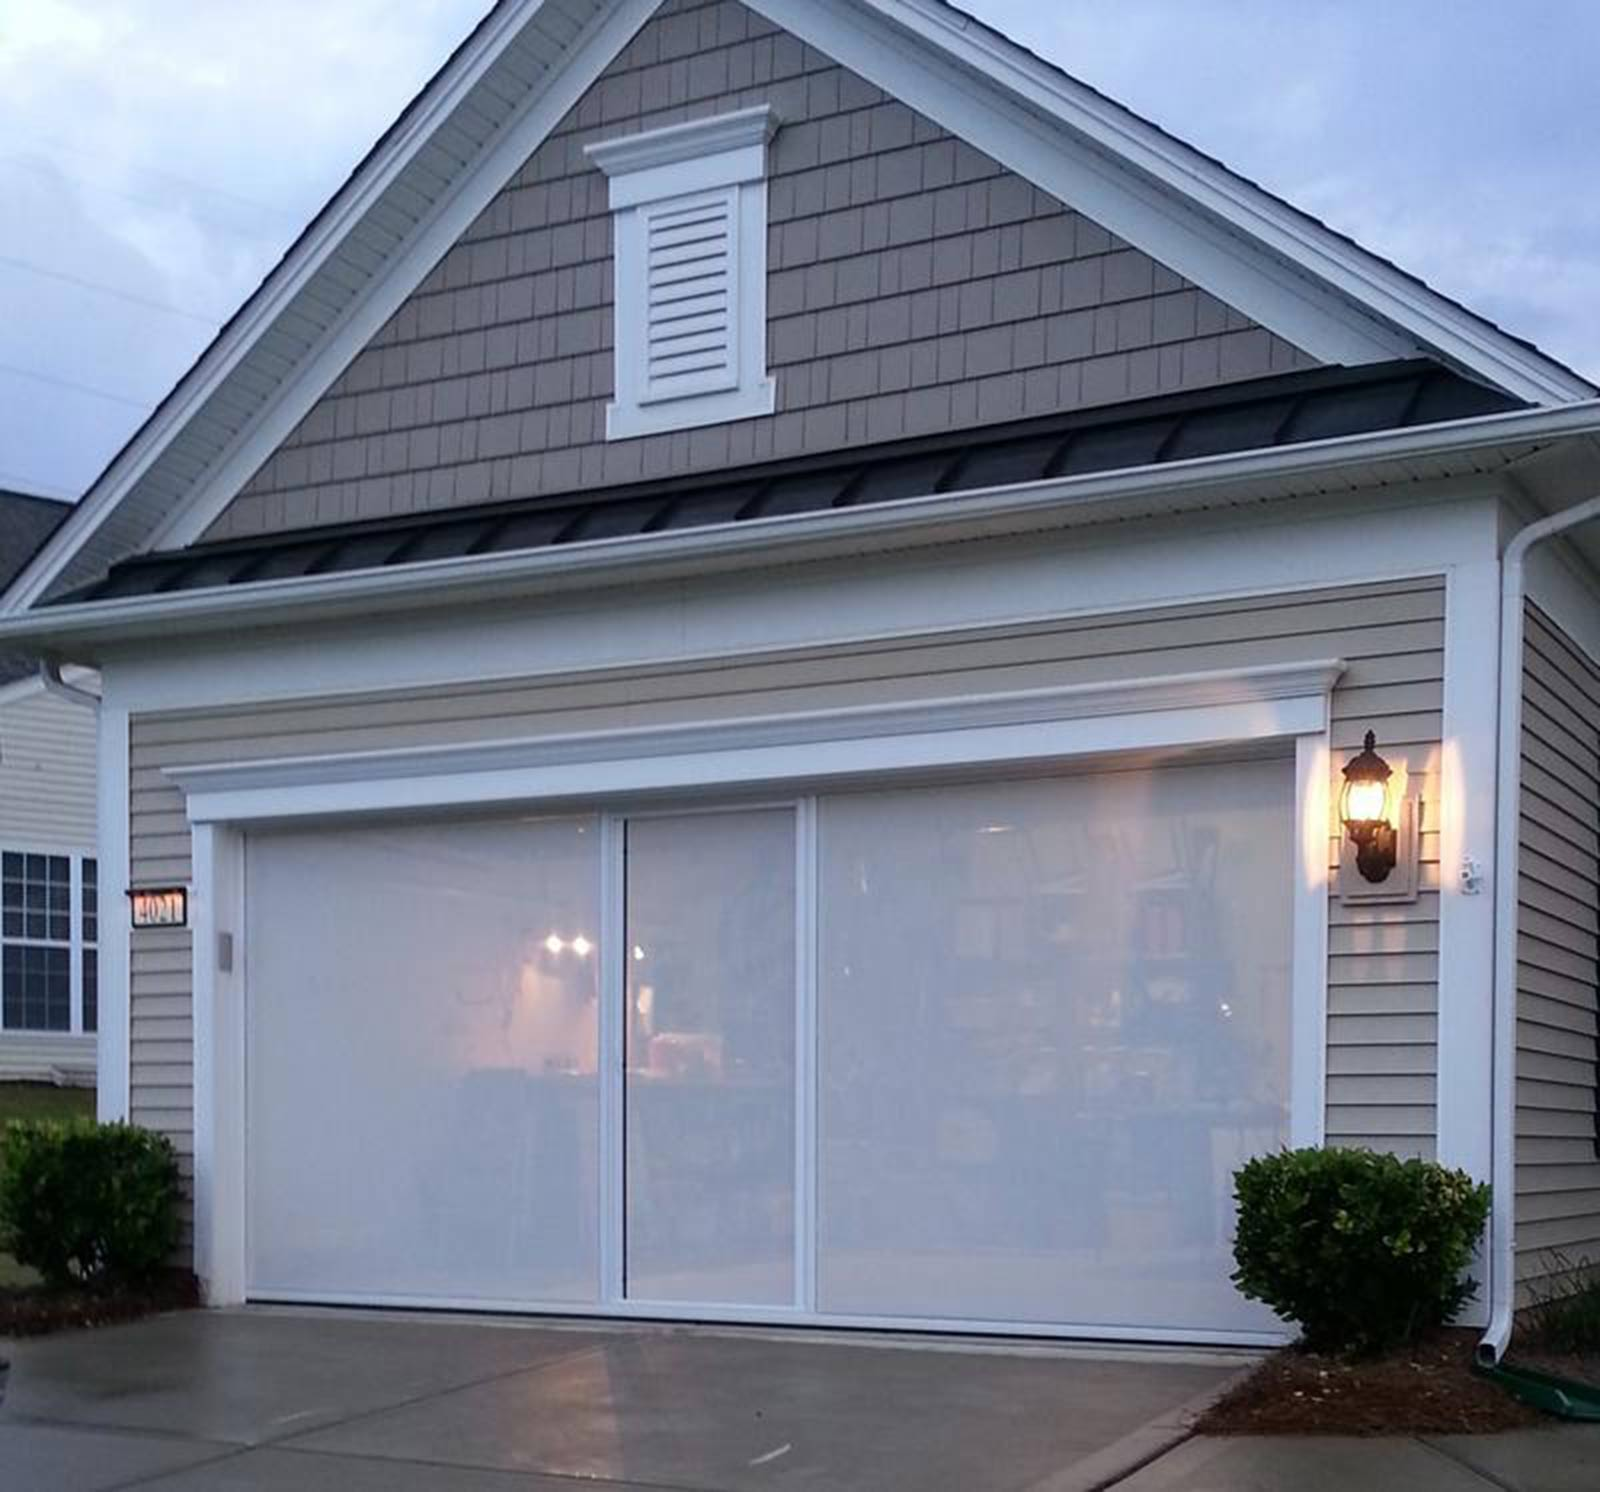 patio gallery installation door install screen enclosure installed sliding garage